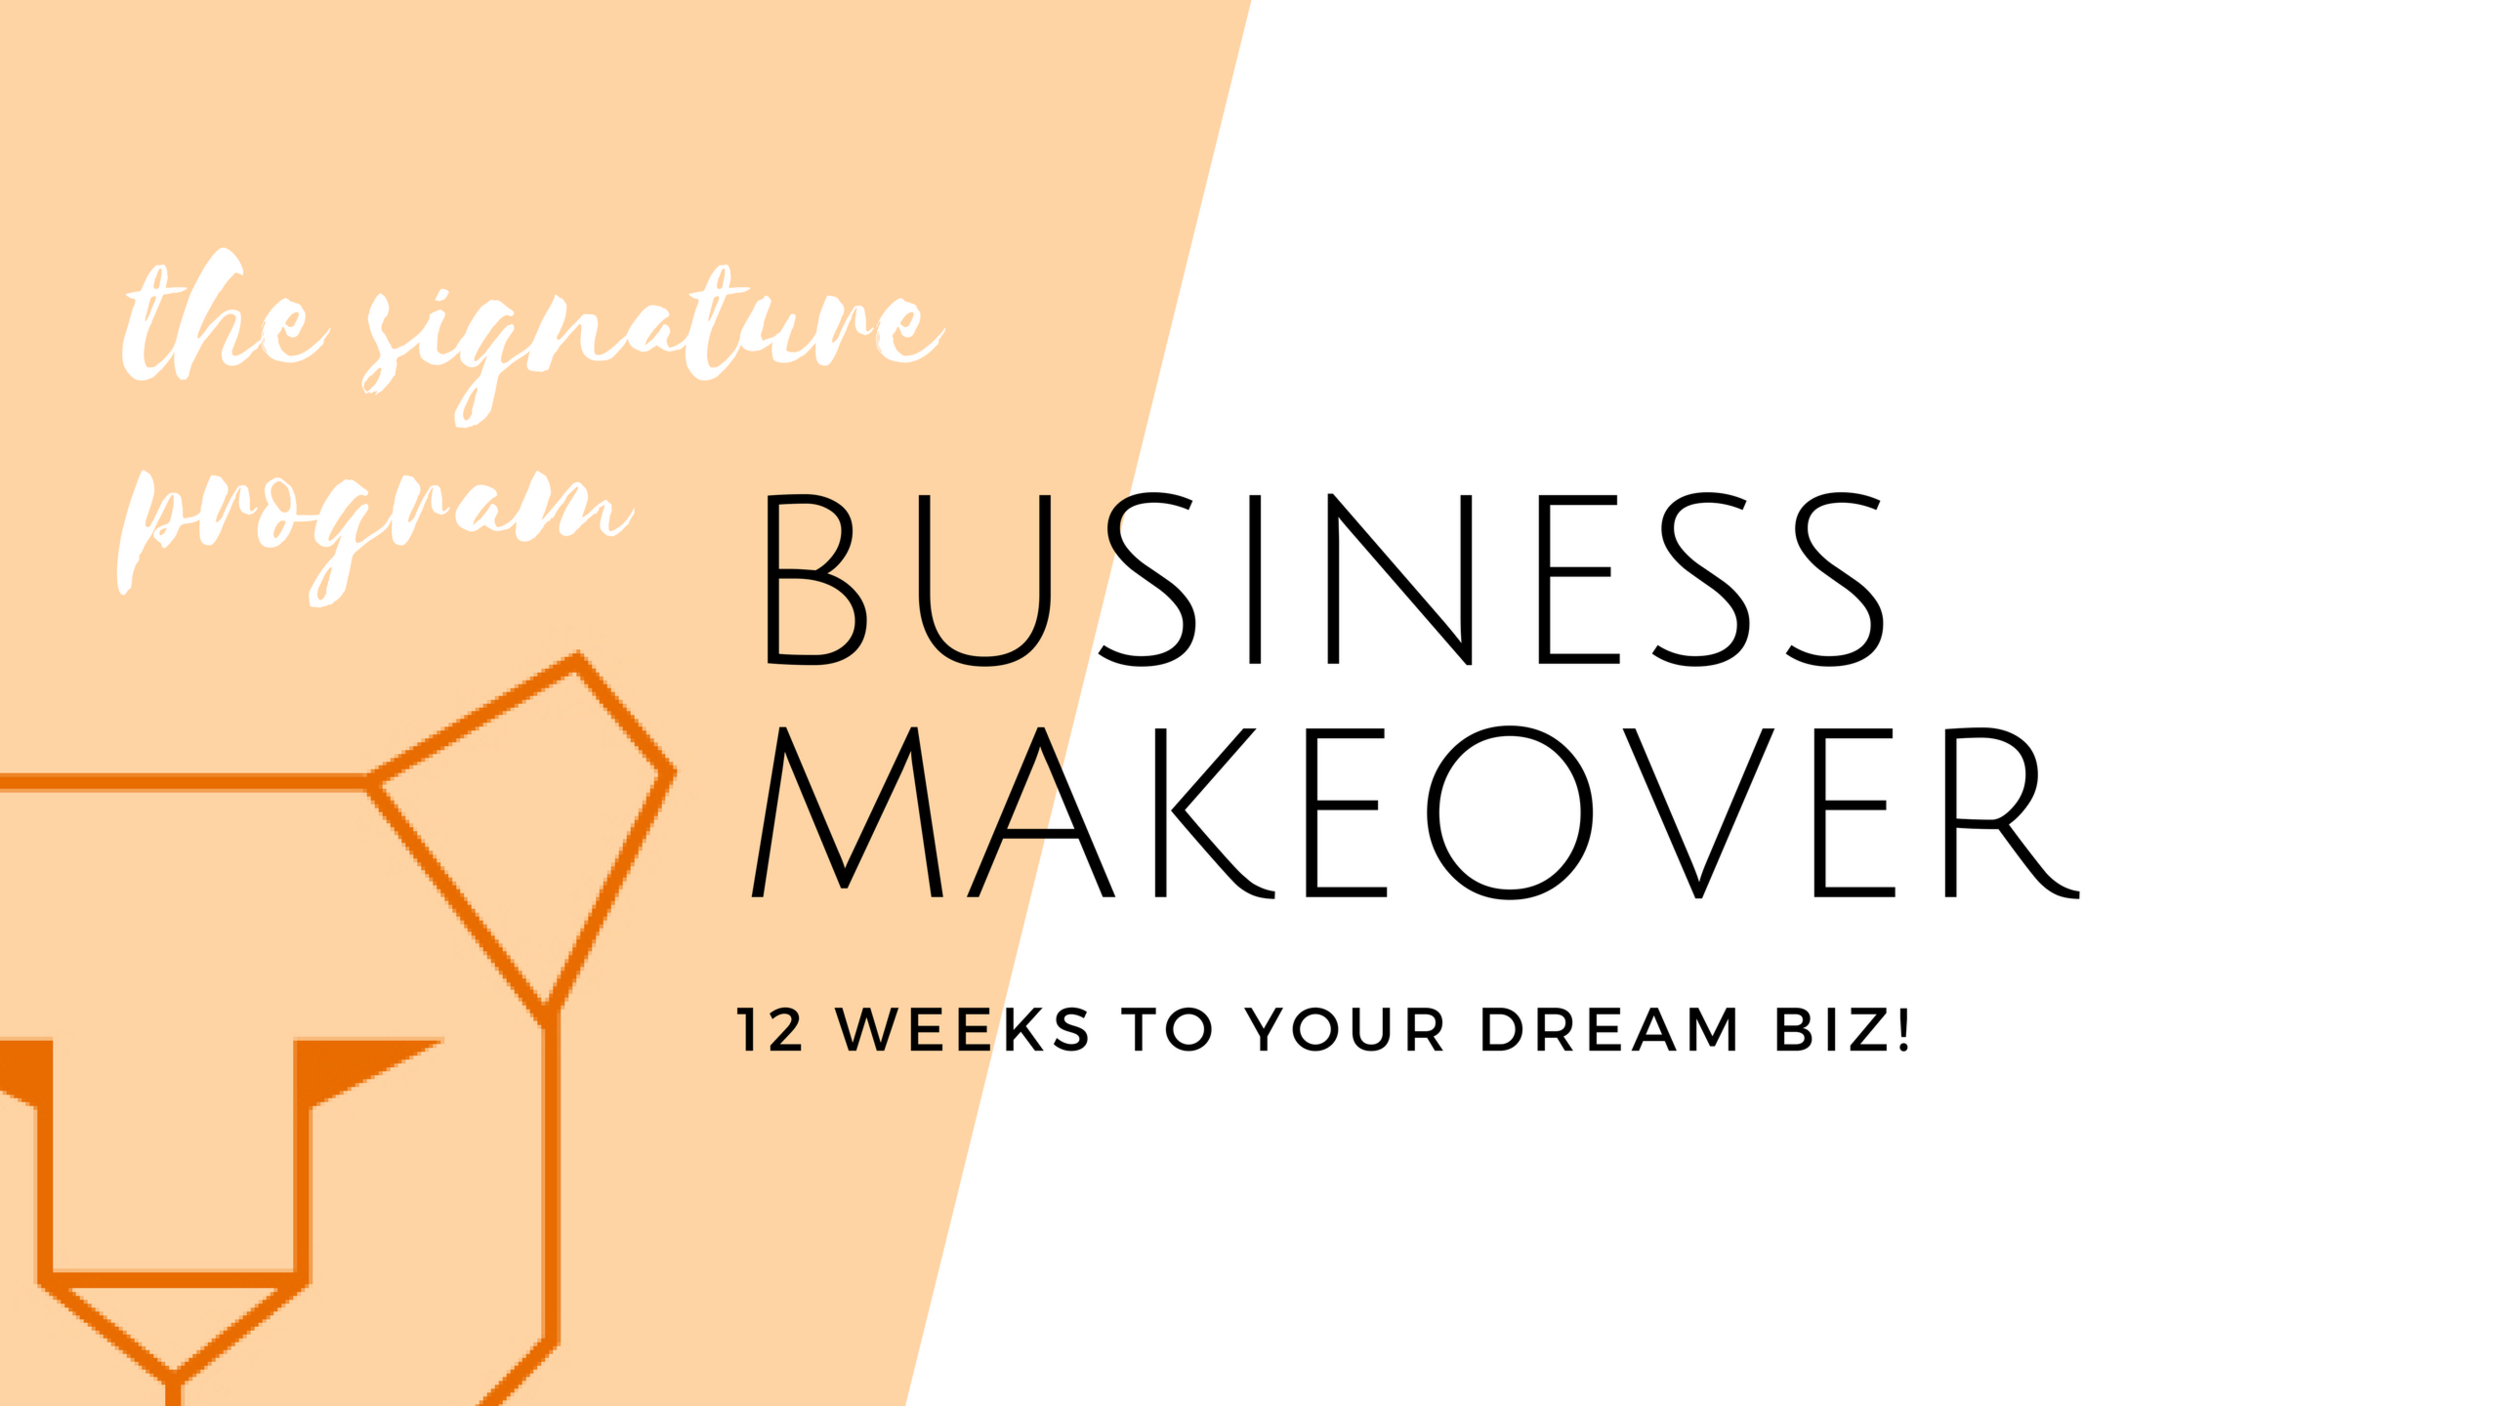 12 weeks to your dream business - I will work with you personally to take your business to the next level. At the end of this program you will have:- a clear business identity- revised service offerings that are easy to sell- a client generation system- overcome procrastination- a success mindset- a 1 year plan for unstoppable momentum